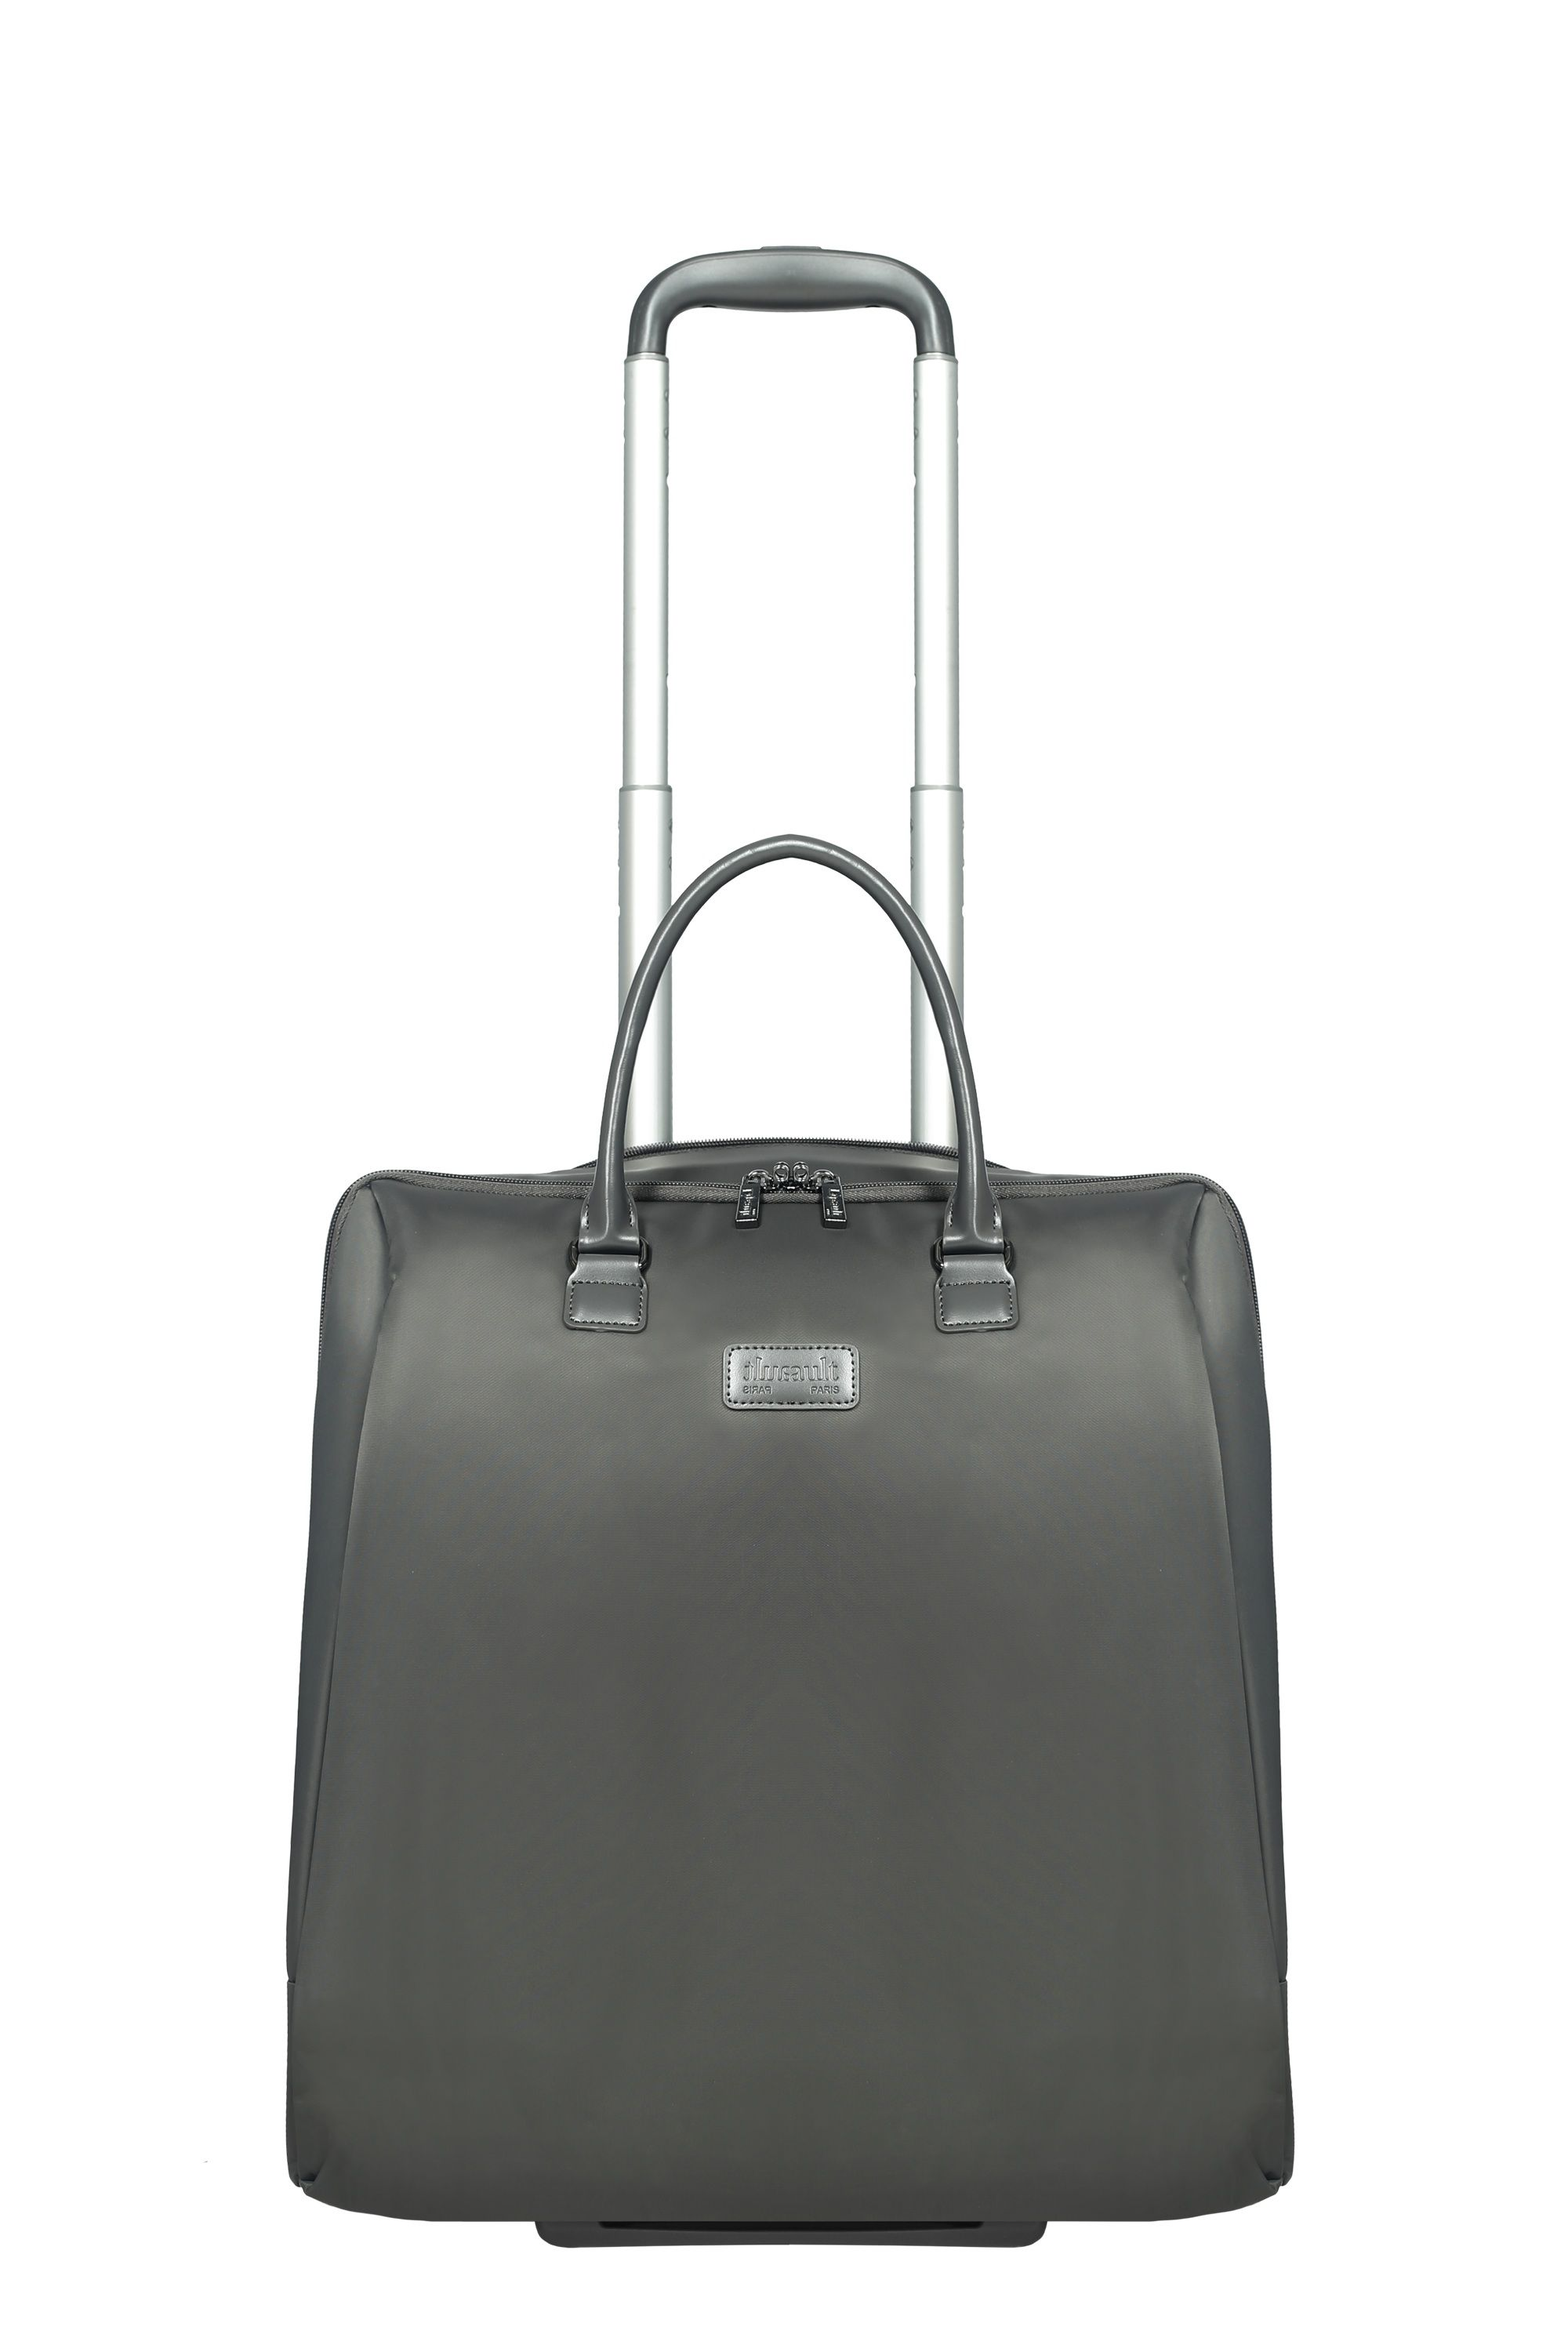 Lipault Lipault Lady plume anthracite grey rolling tote 15 inch, Grey